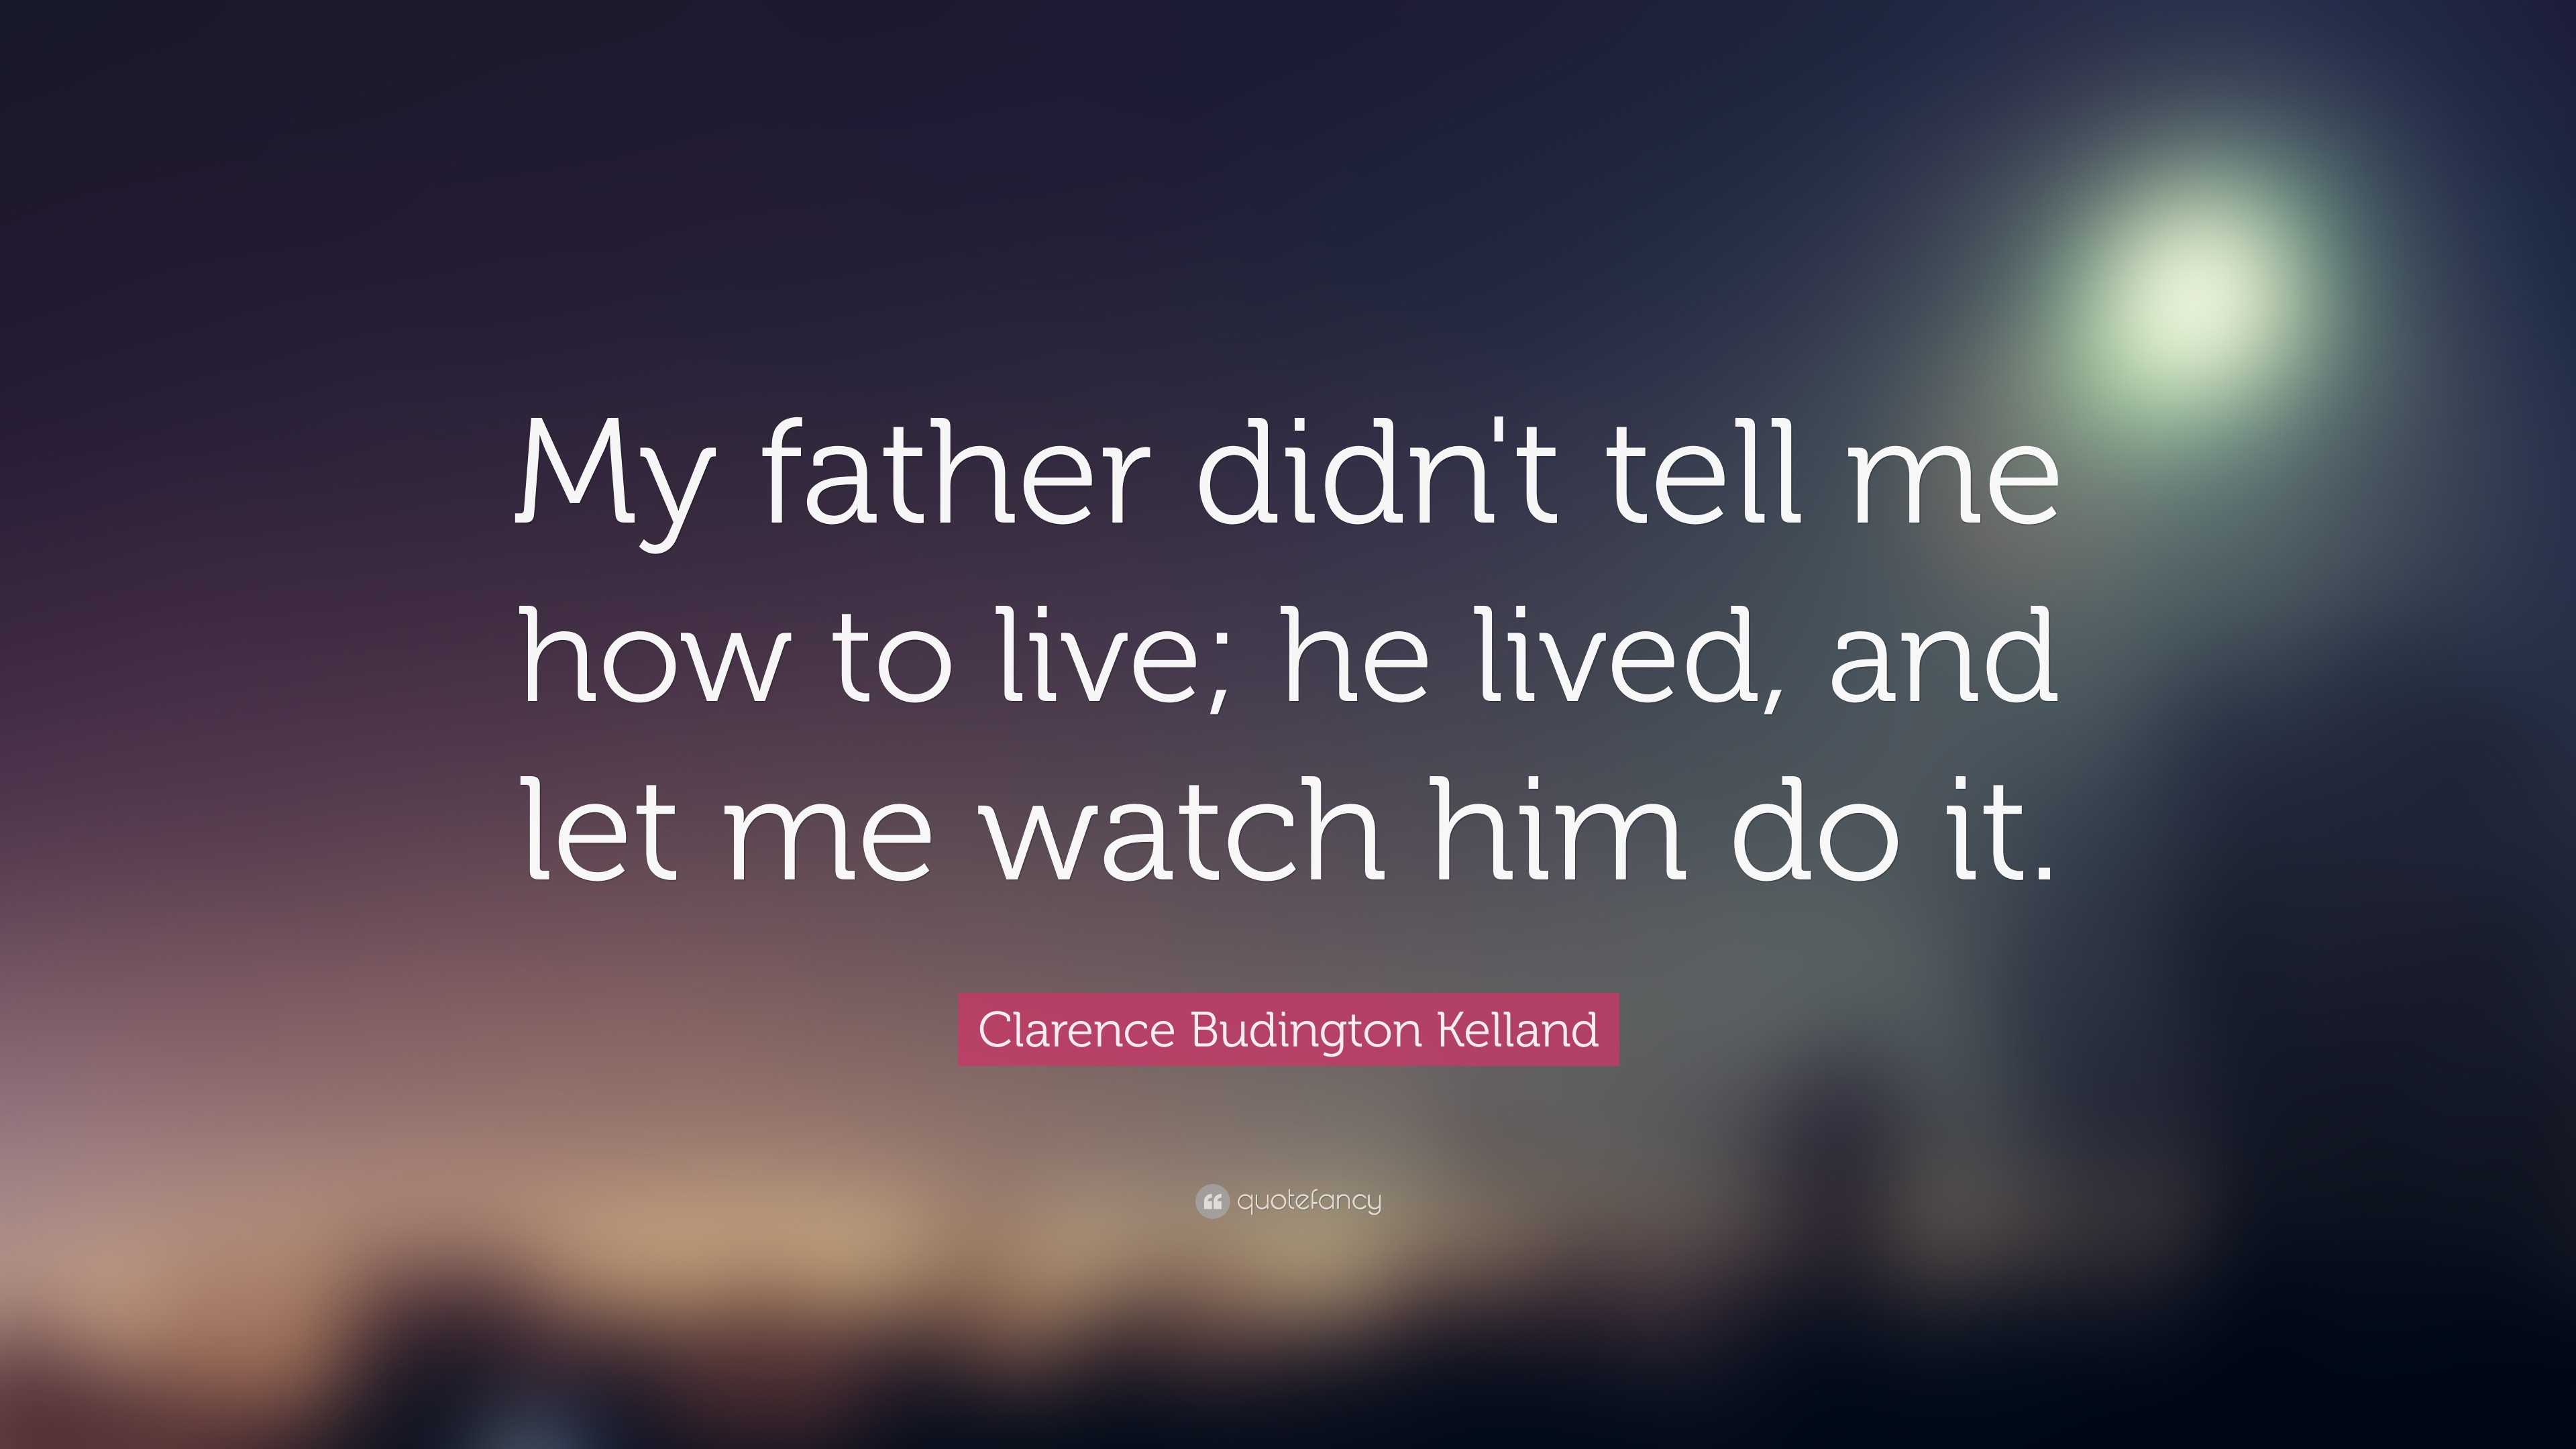 Image of: Sayings Fathers Day Quotes my Father Didnt Tell Me How To Live Dgreetings Fathers Day Quotes 26 Wallpapers Quotefancy